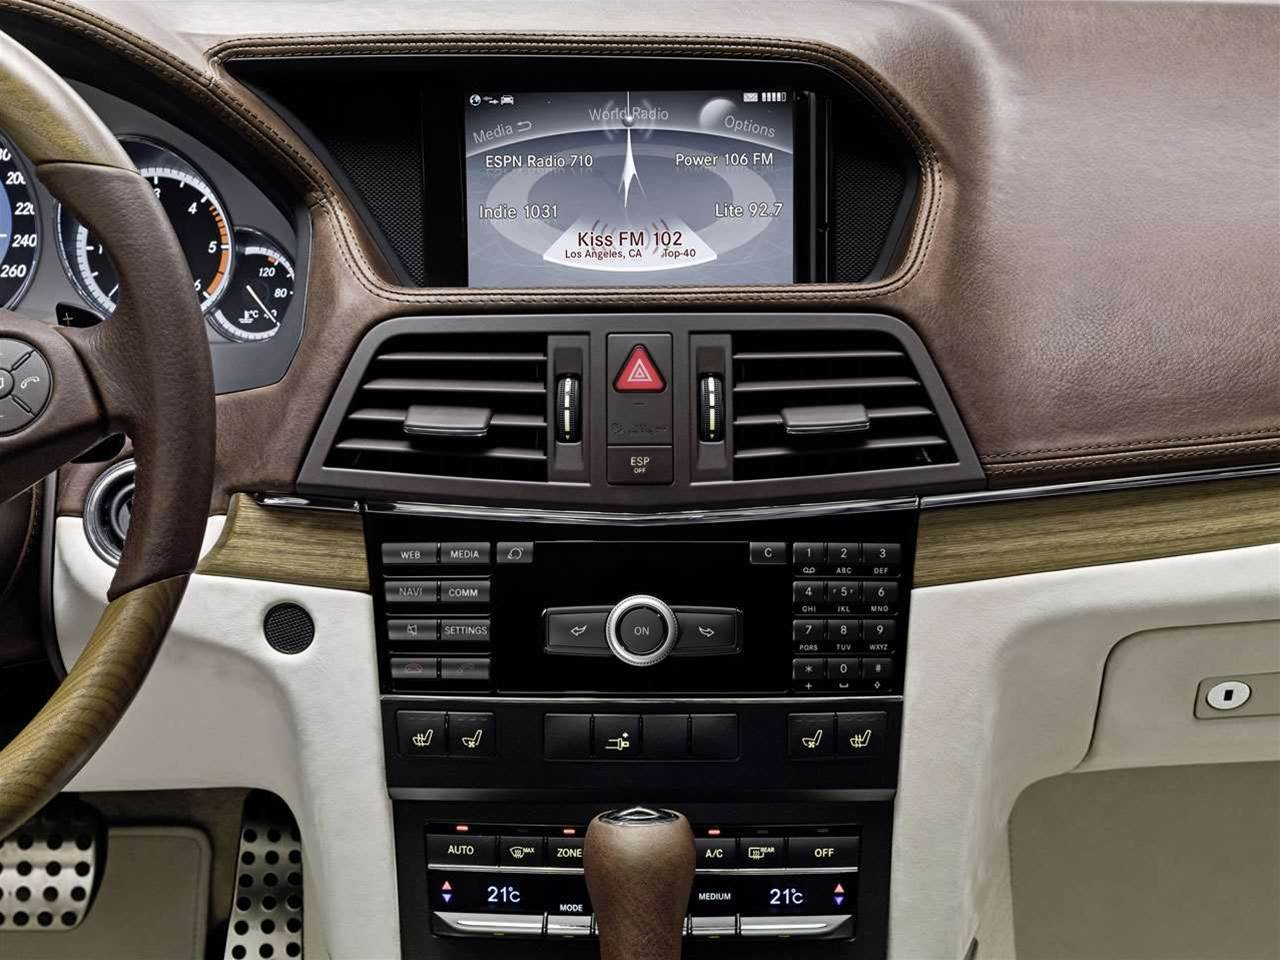 Auto tech: Is this the future of in-car Internet?